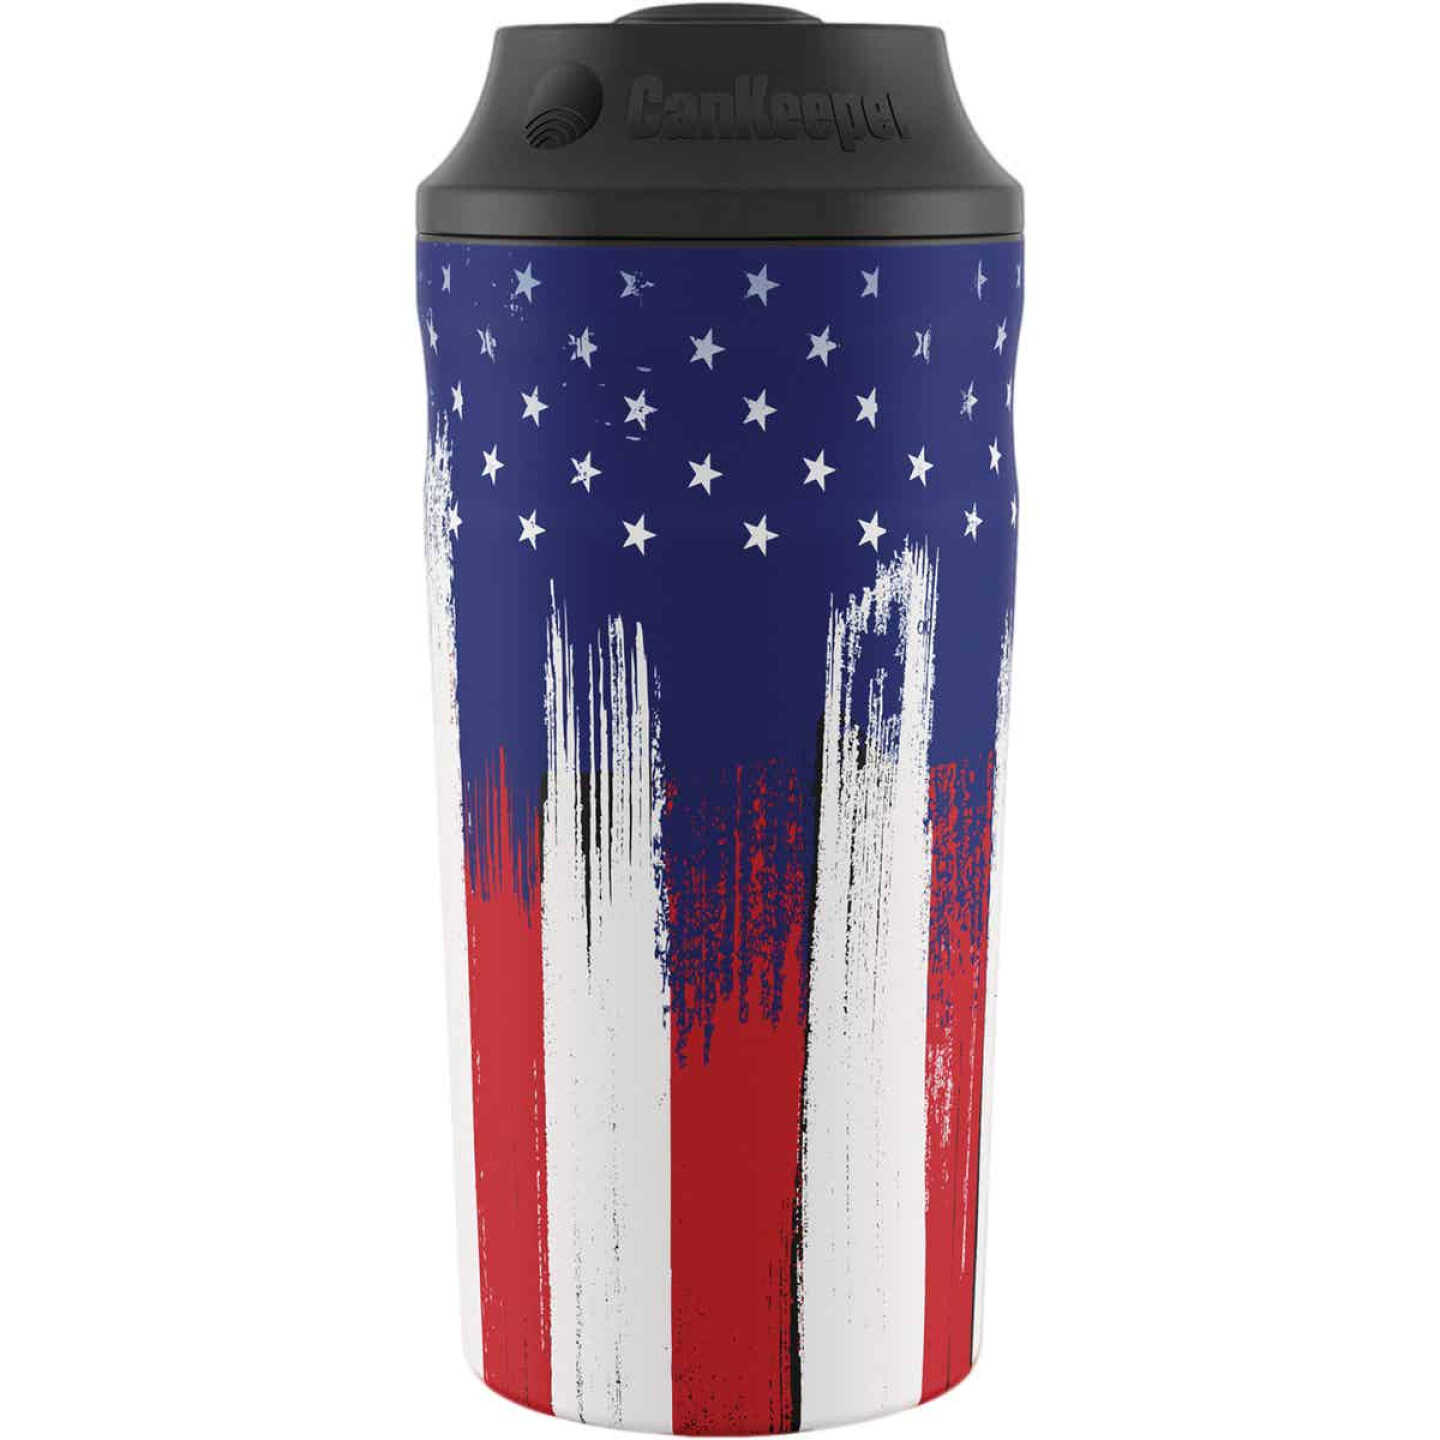 CanKeeper American Can Holder Image 1